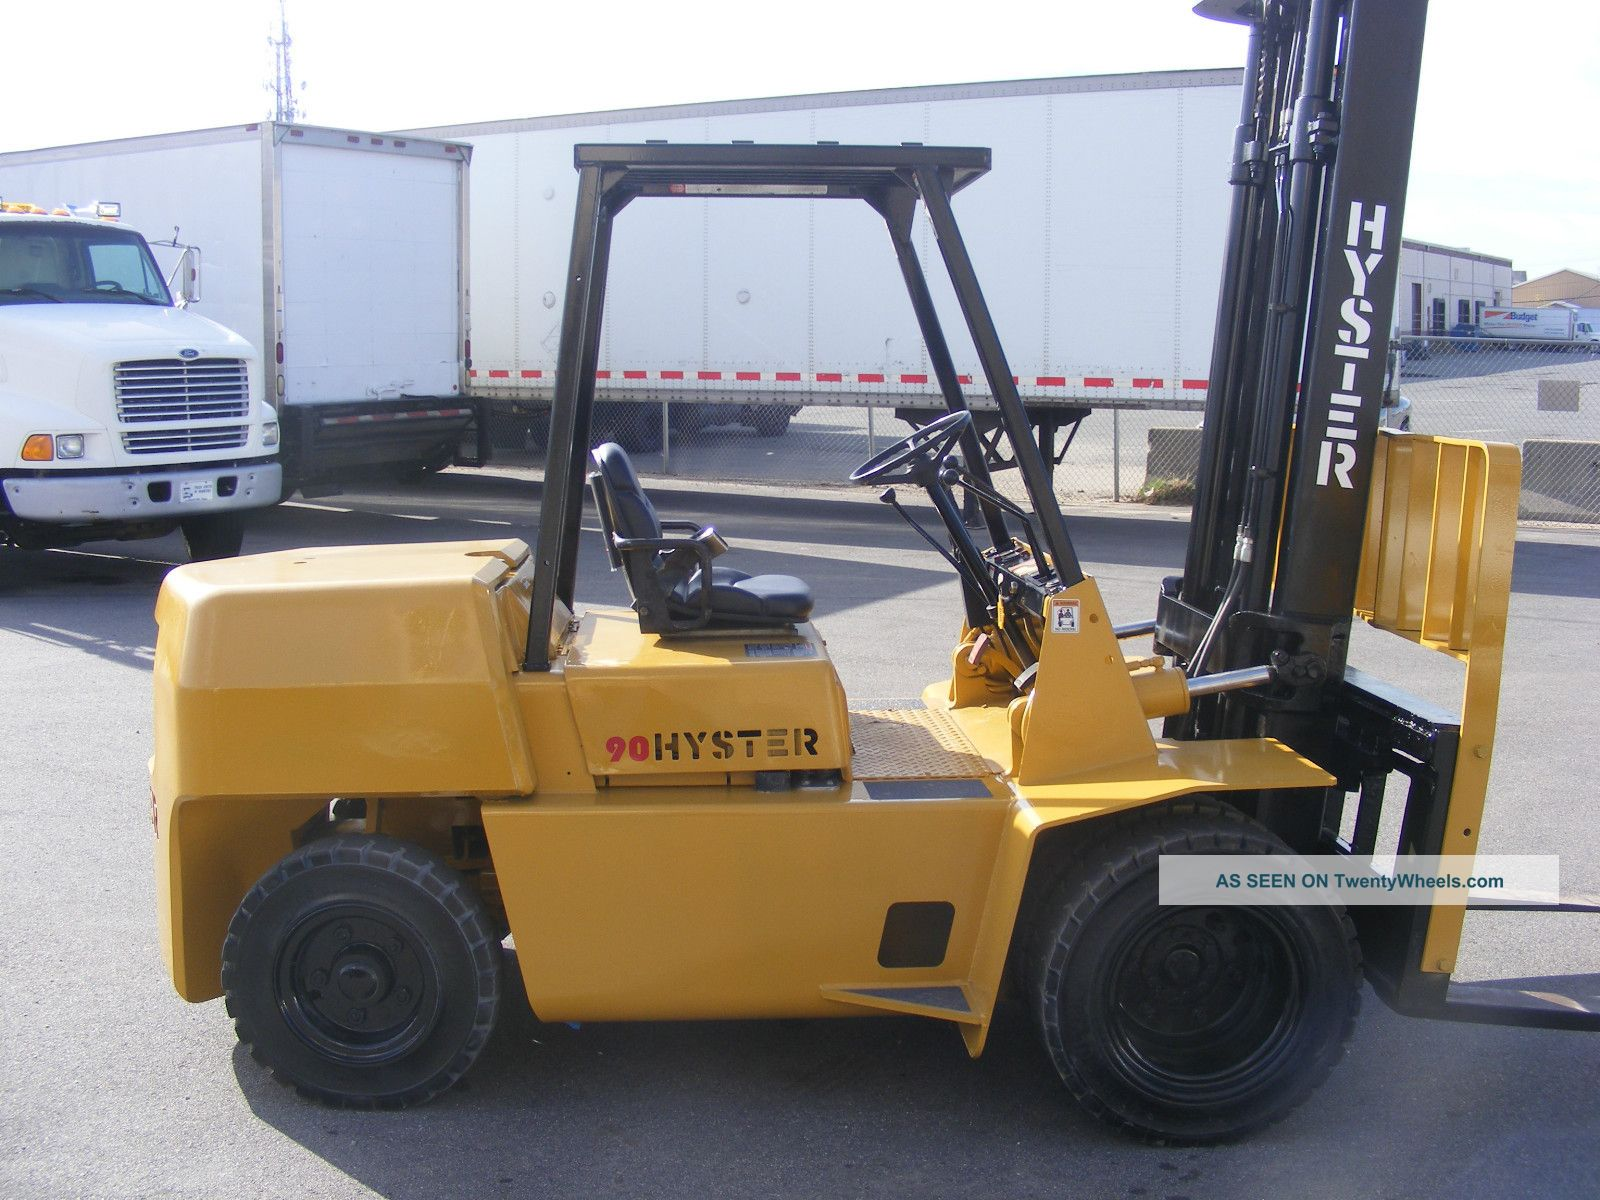 Hyster 90 photo - 5